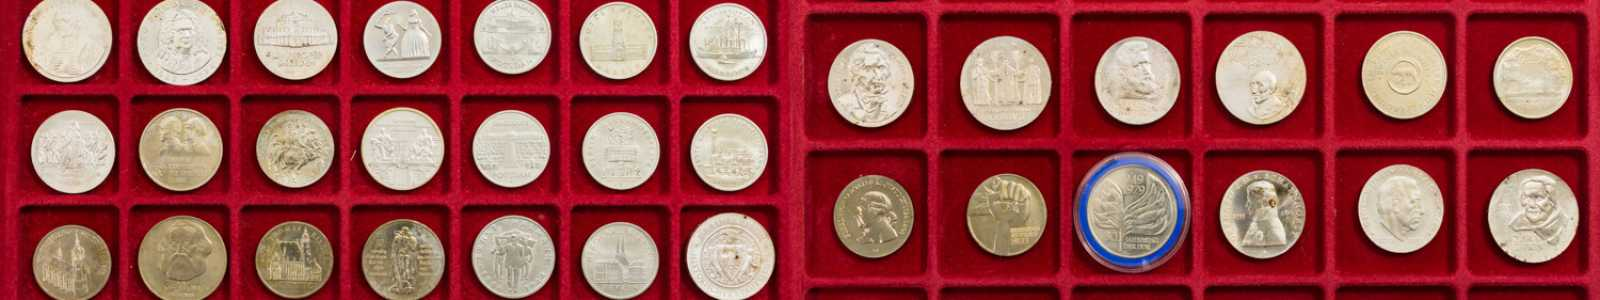 Coins, Medals, Stamps